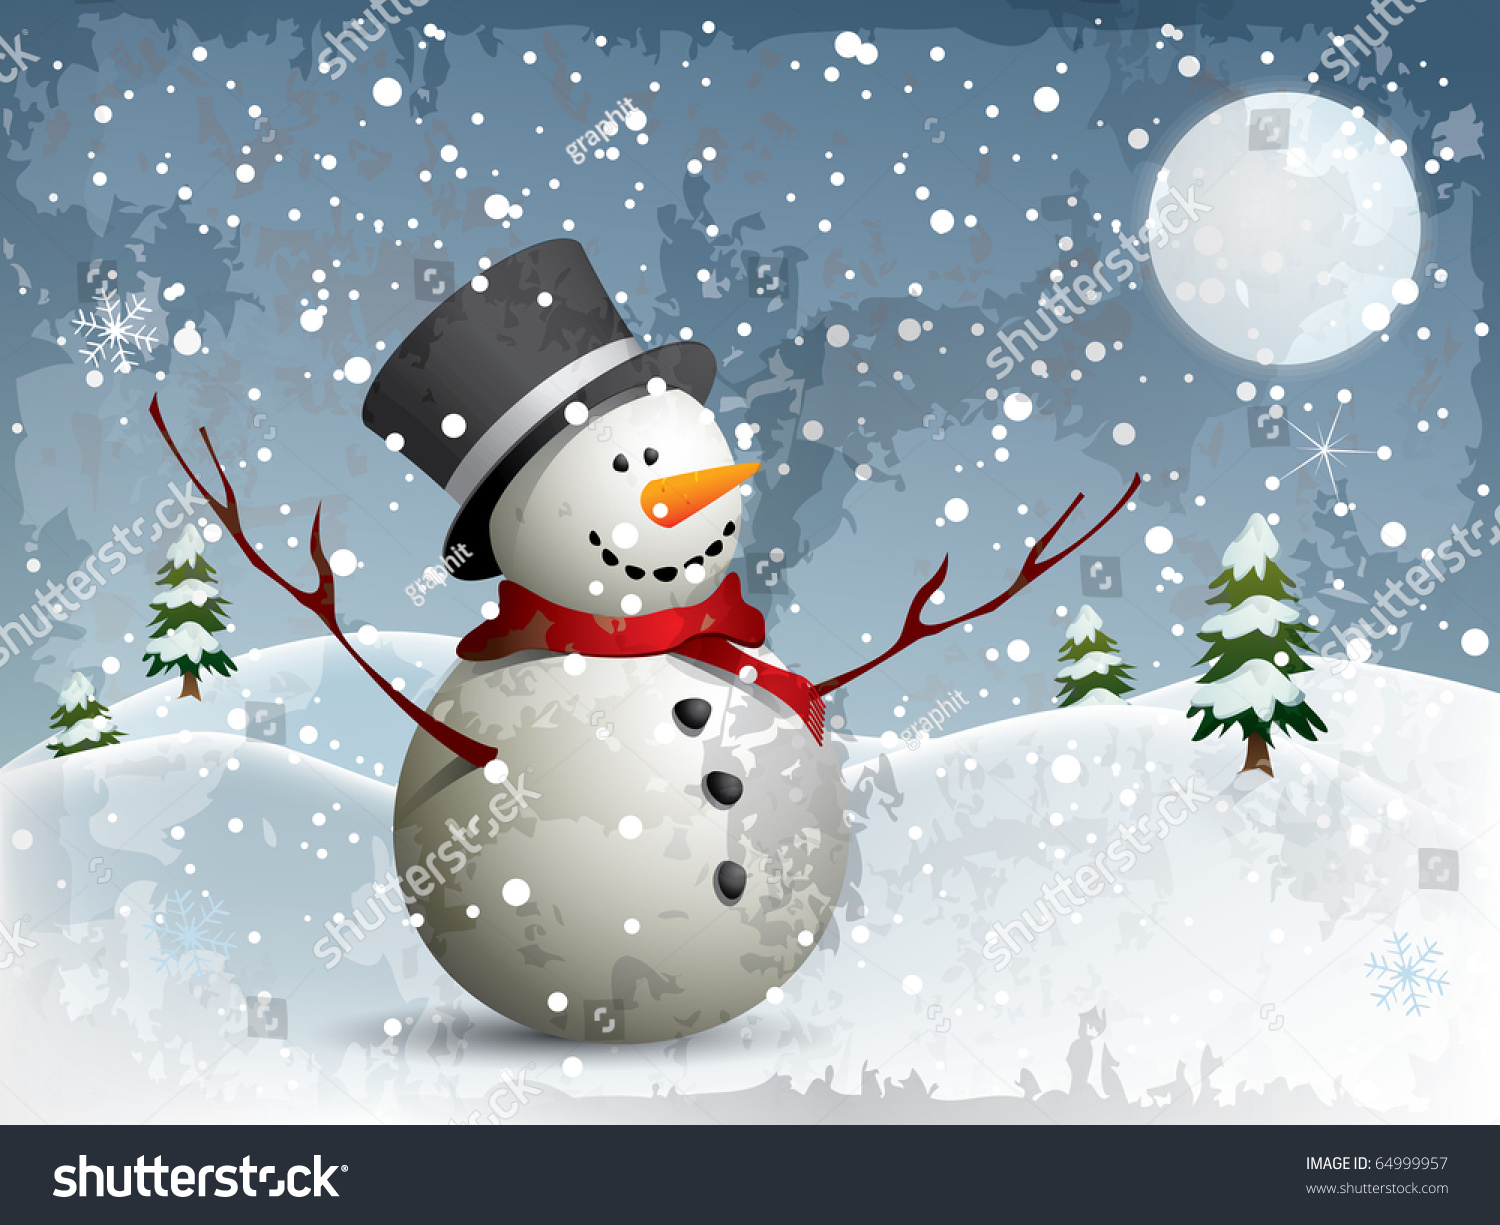 Best Merry Christmas And Happy New Year Wishes